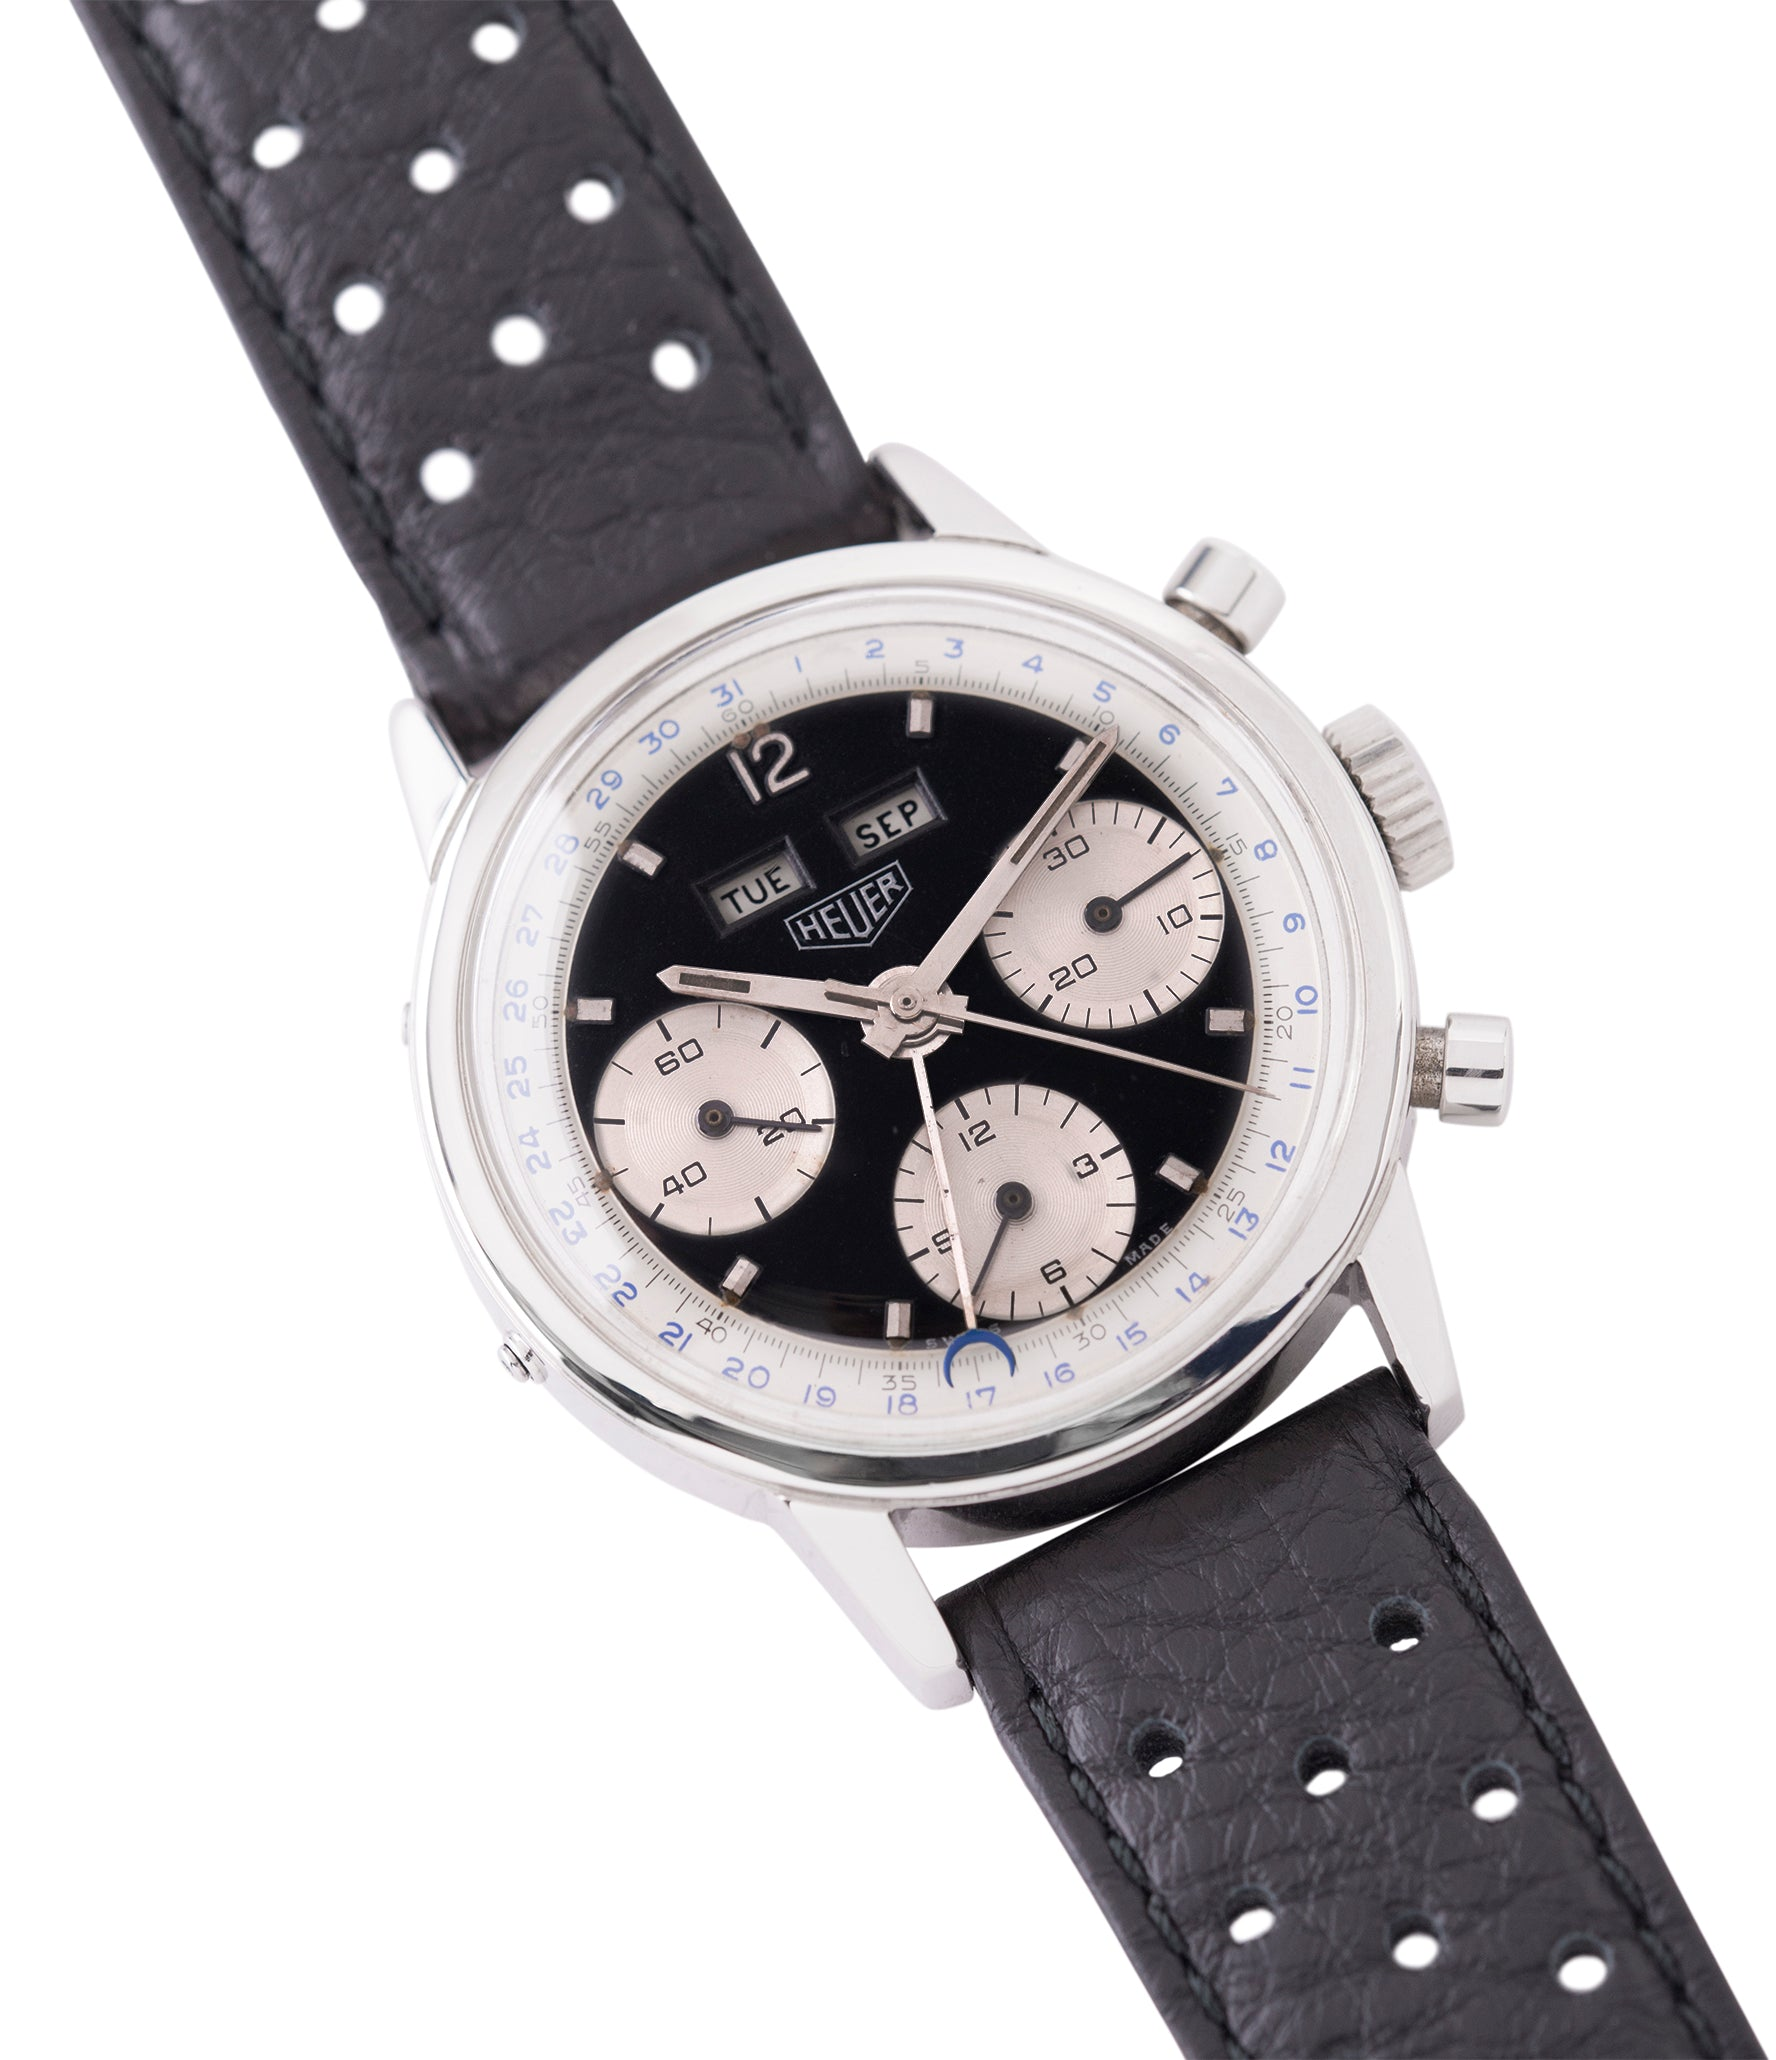 sell vintage Heuer Carrera 2546NS Dato 12 panda dial triple calendar chronograph most complicated Heuer watch for sale online at A Collected Man London UK specialist of rare watches